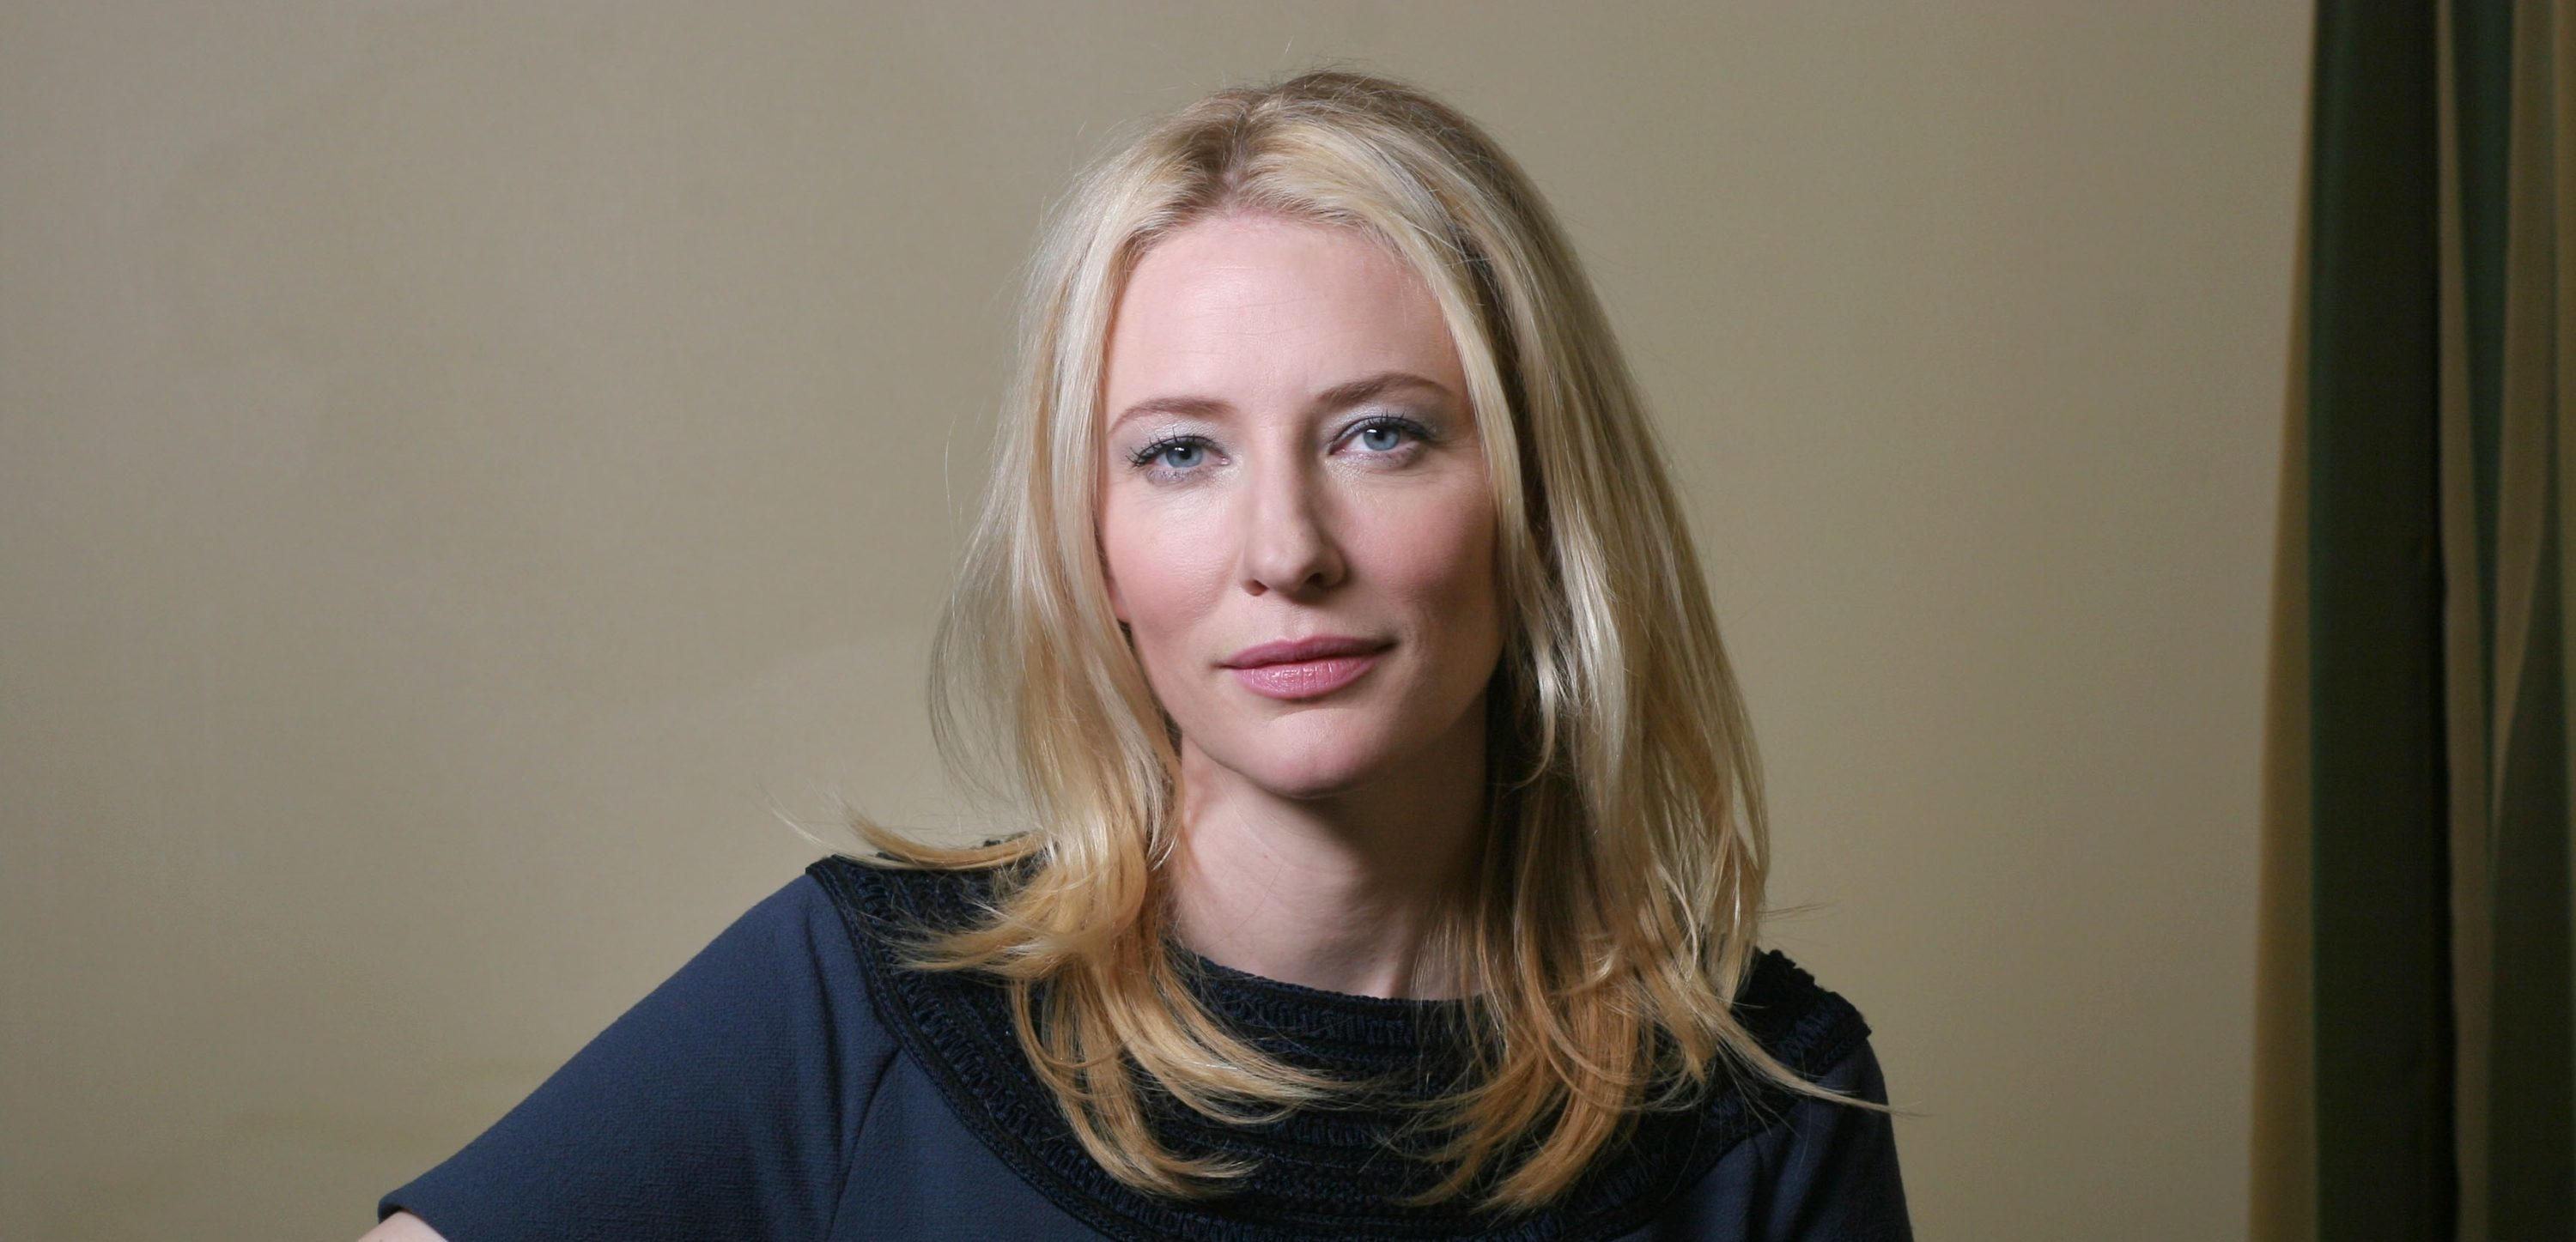 Cate Blanchett Fan: Gallery Updated!